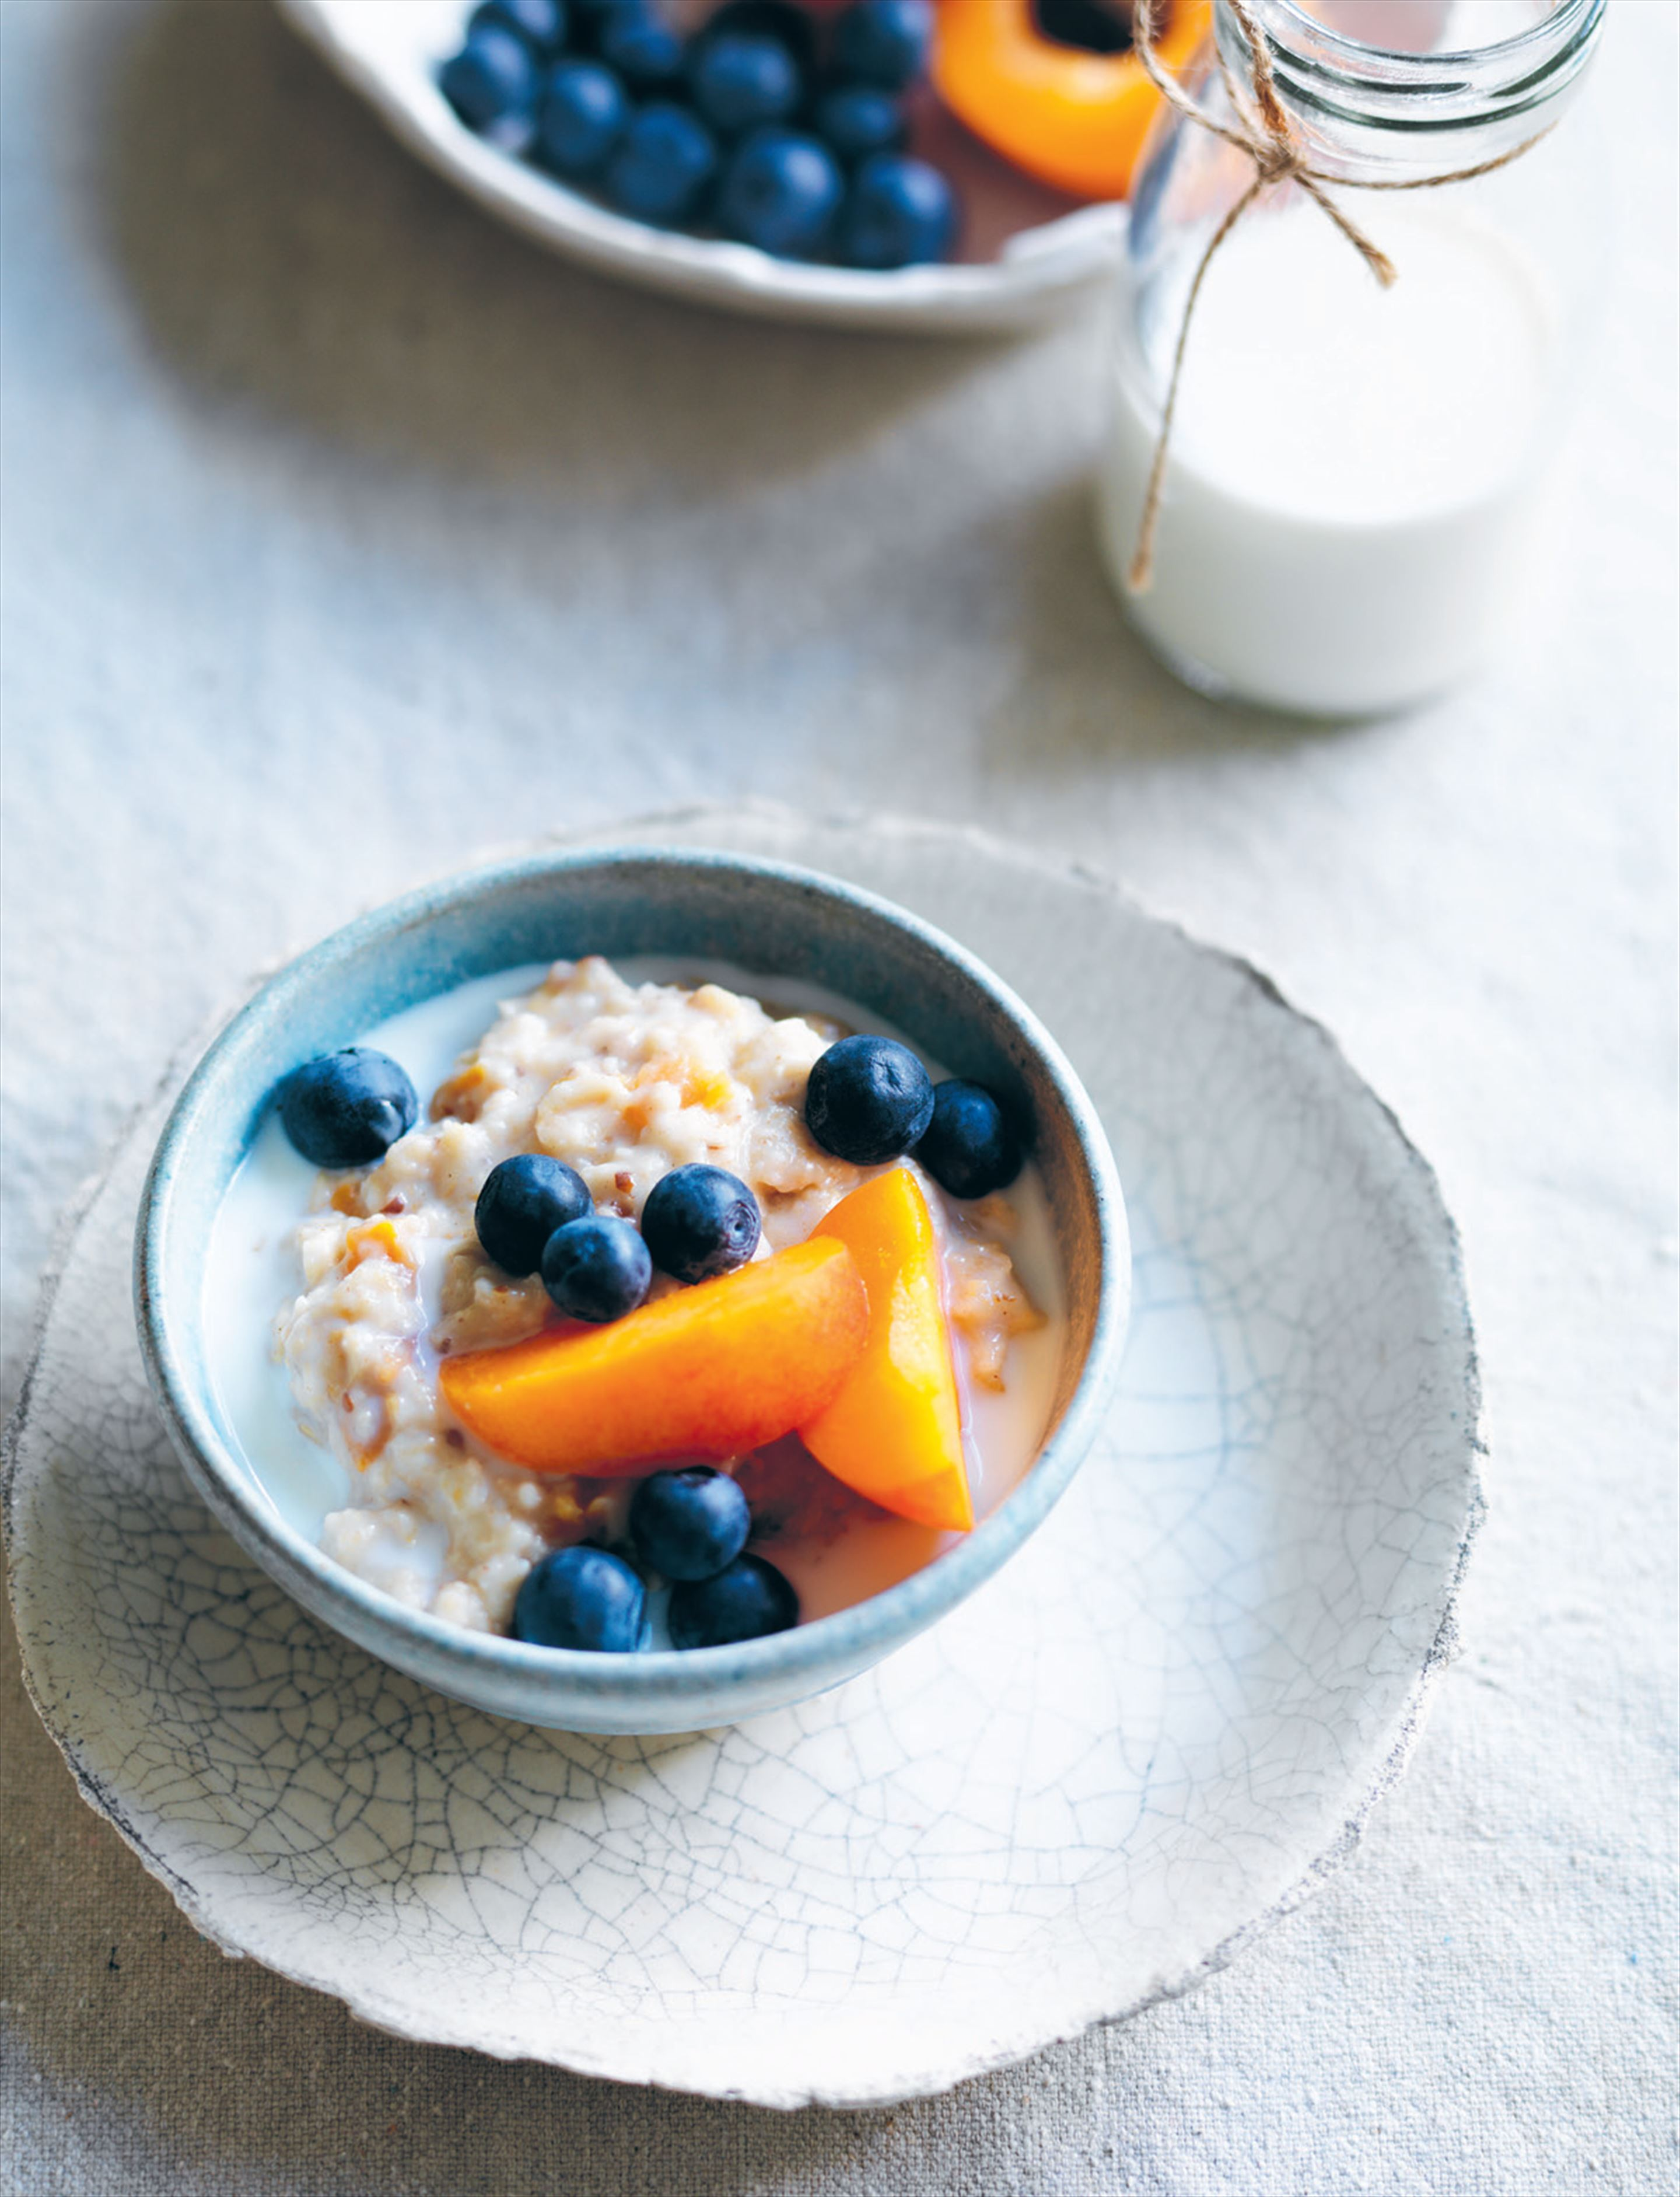 Three-grain blueberry and apricot porridge